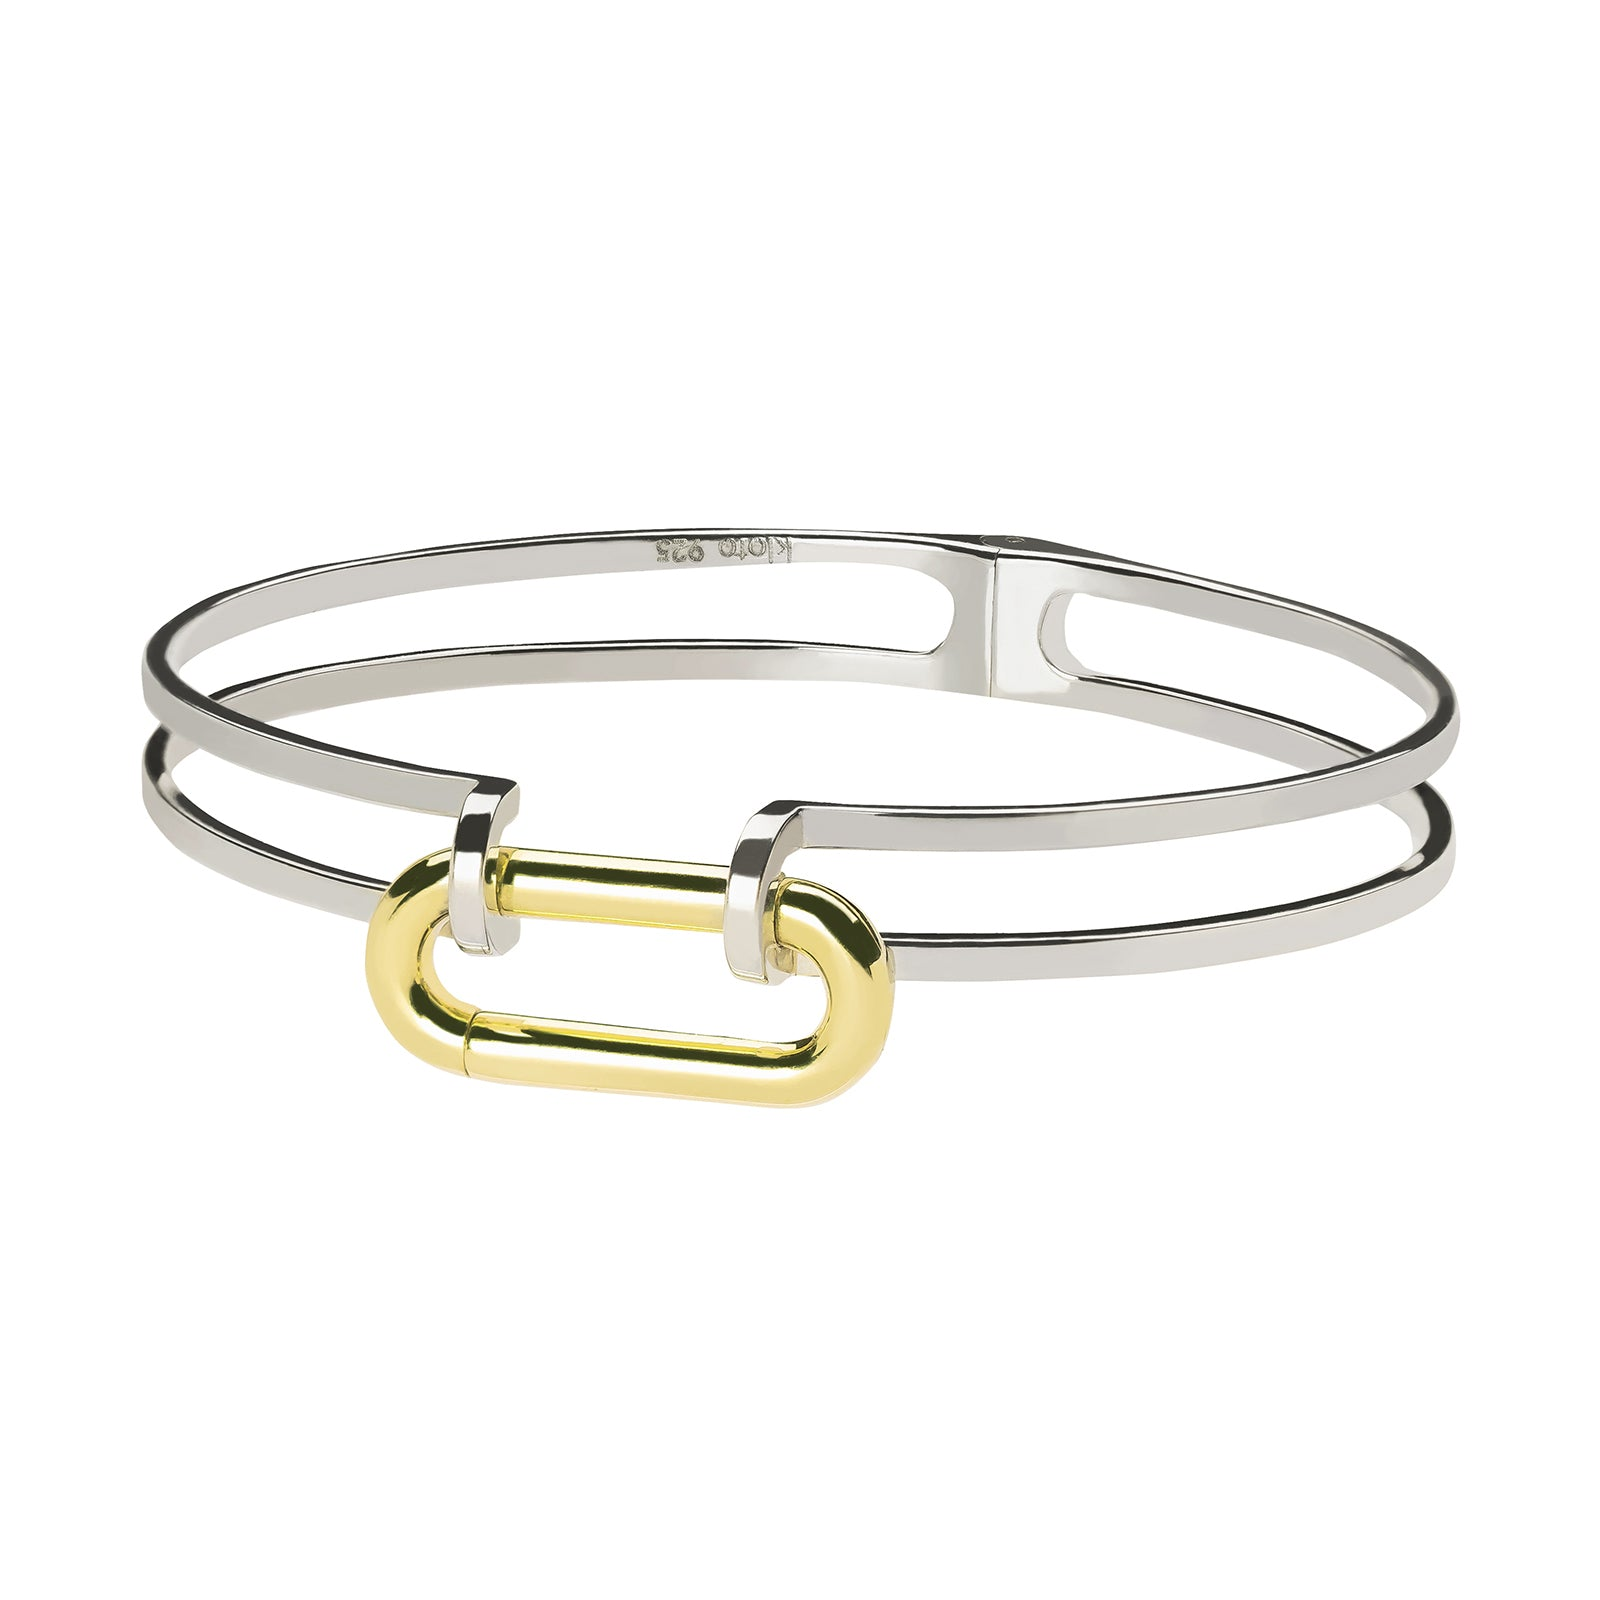 Kloto Duo Bolt Cuff - Bracelets - Broken English Jewelry